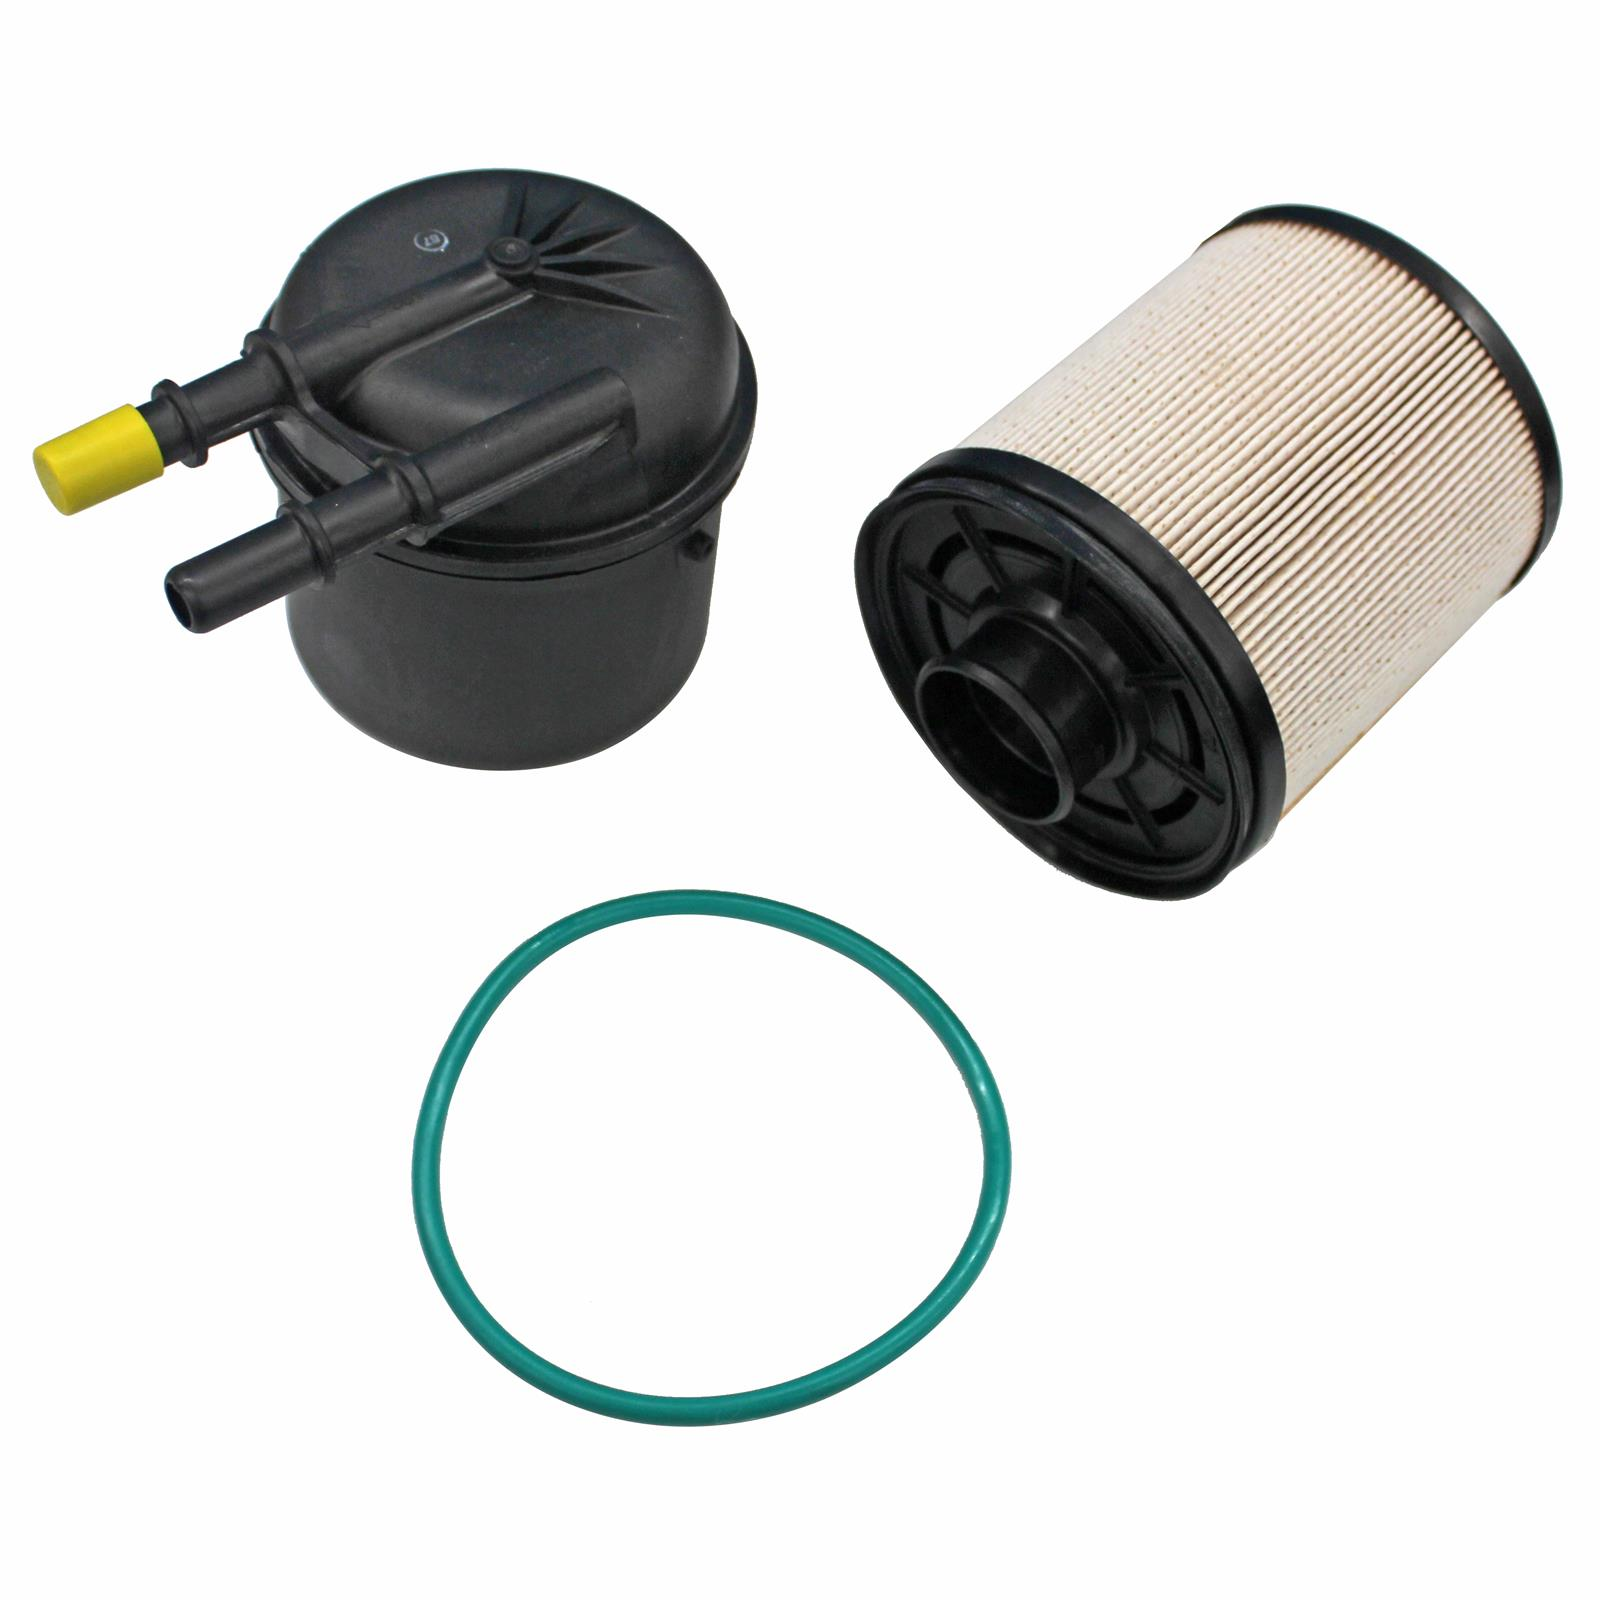 hight resolution of motorcraft fuel filters bc3z9n184b free shipping on orders over 99 at summit racing